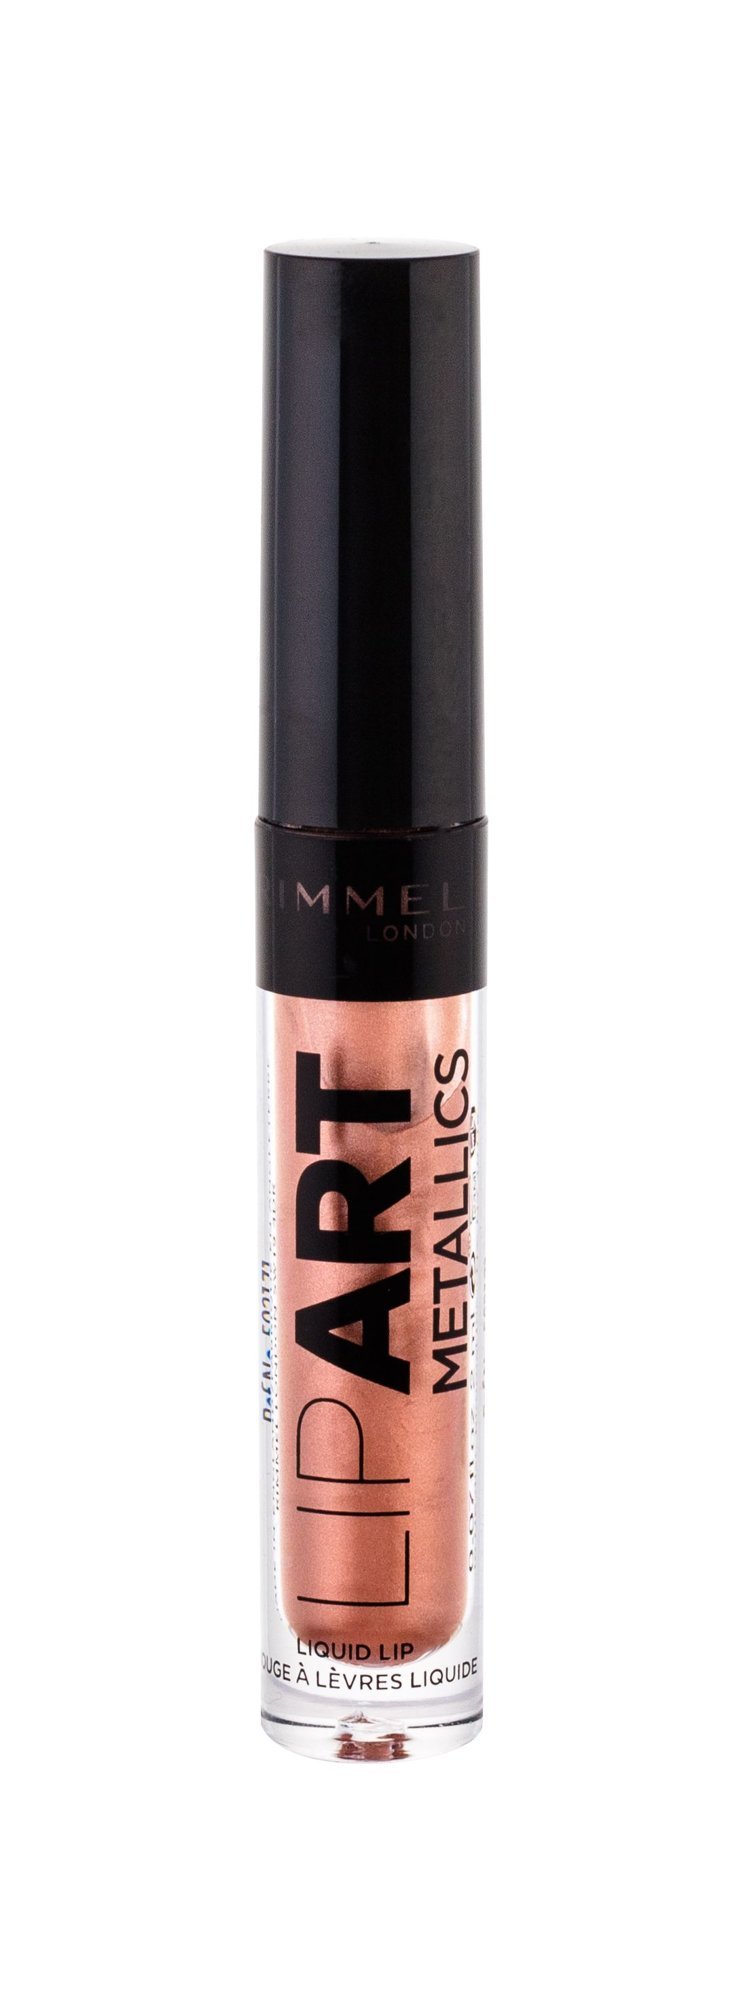 Rimmel London Lip Art Lip Gloss 2ml 040 Copper Rocker